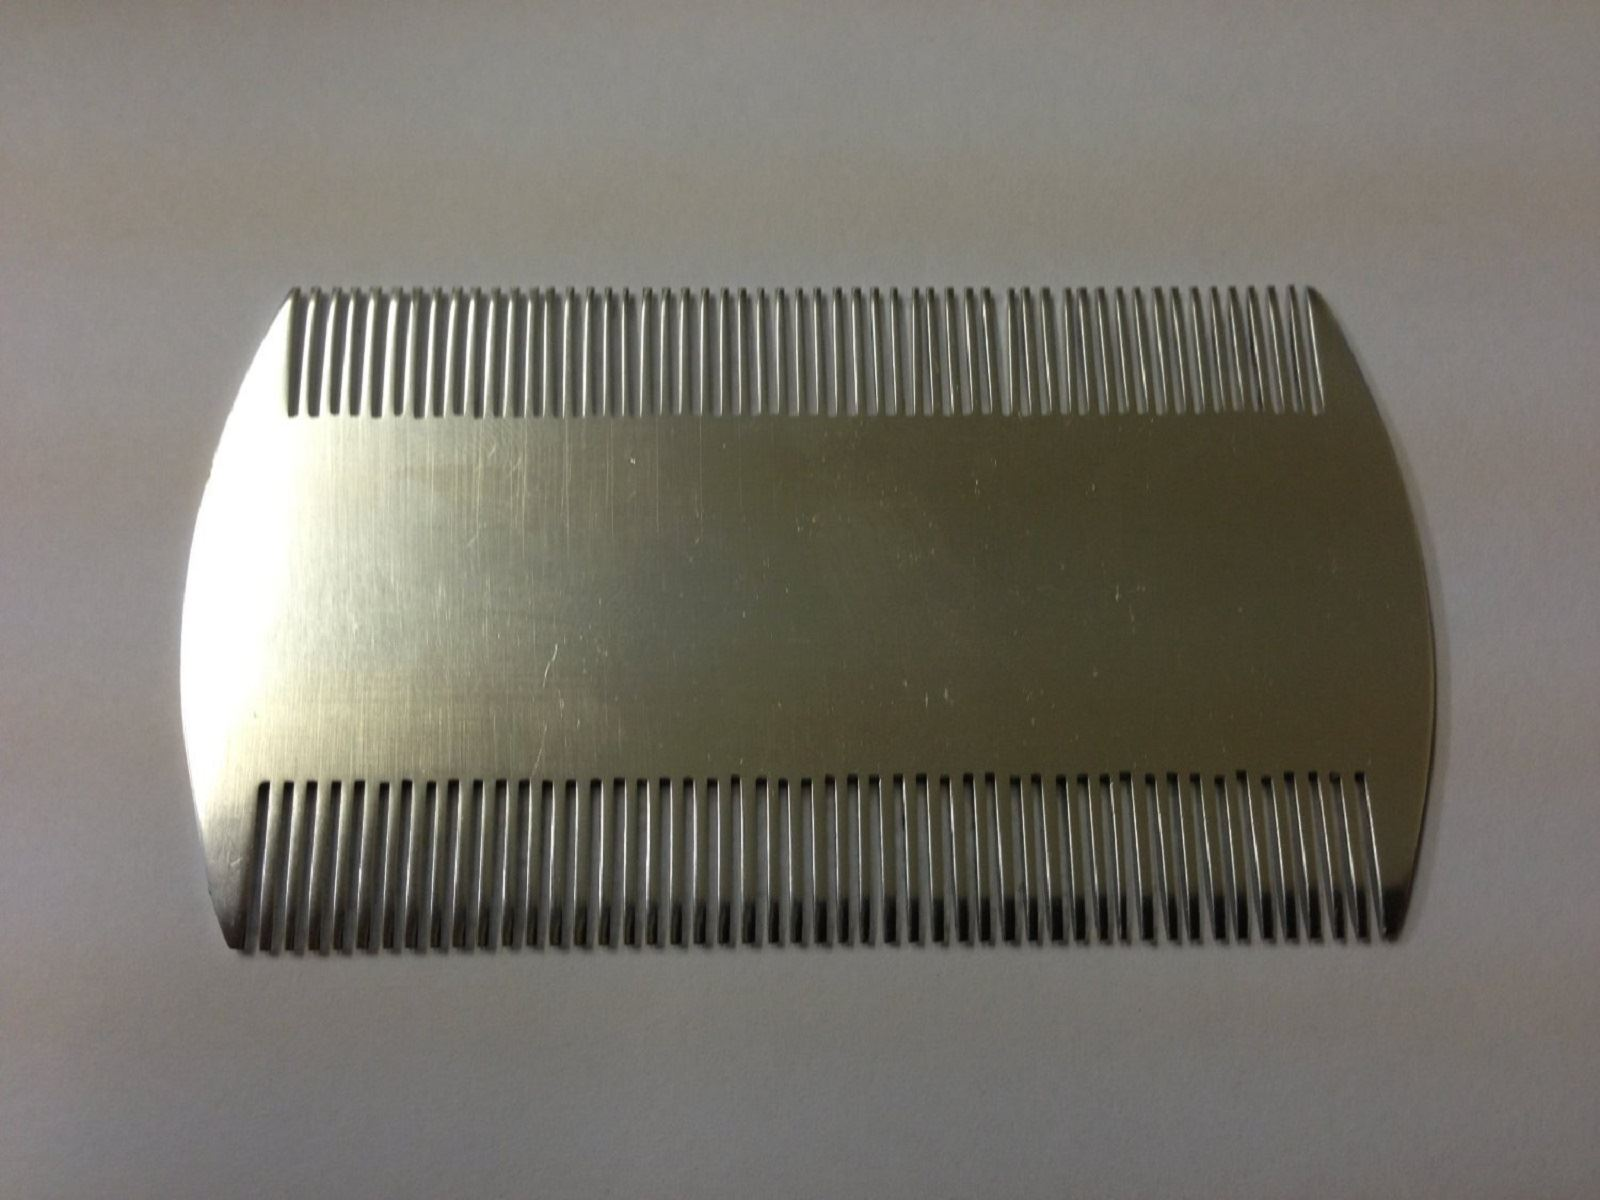 Head Lice Pictures Actual Size nit combs for head lice